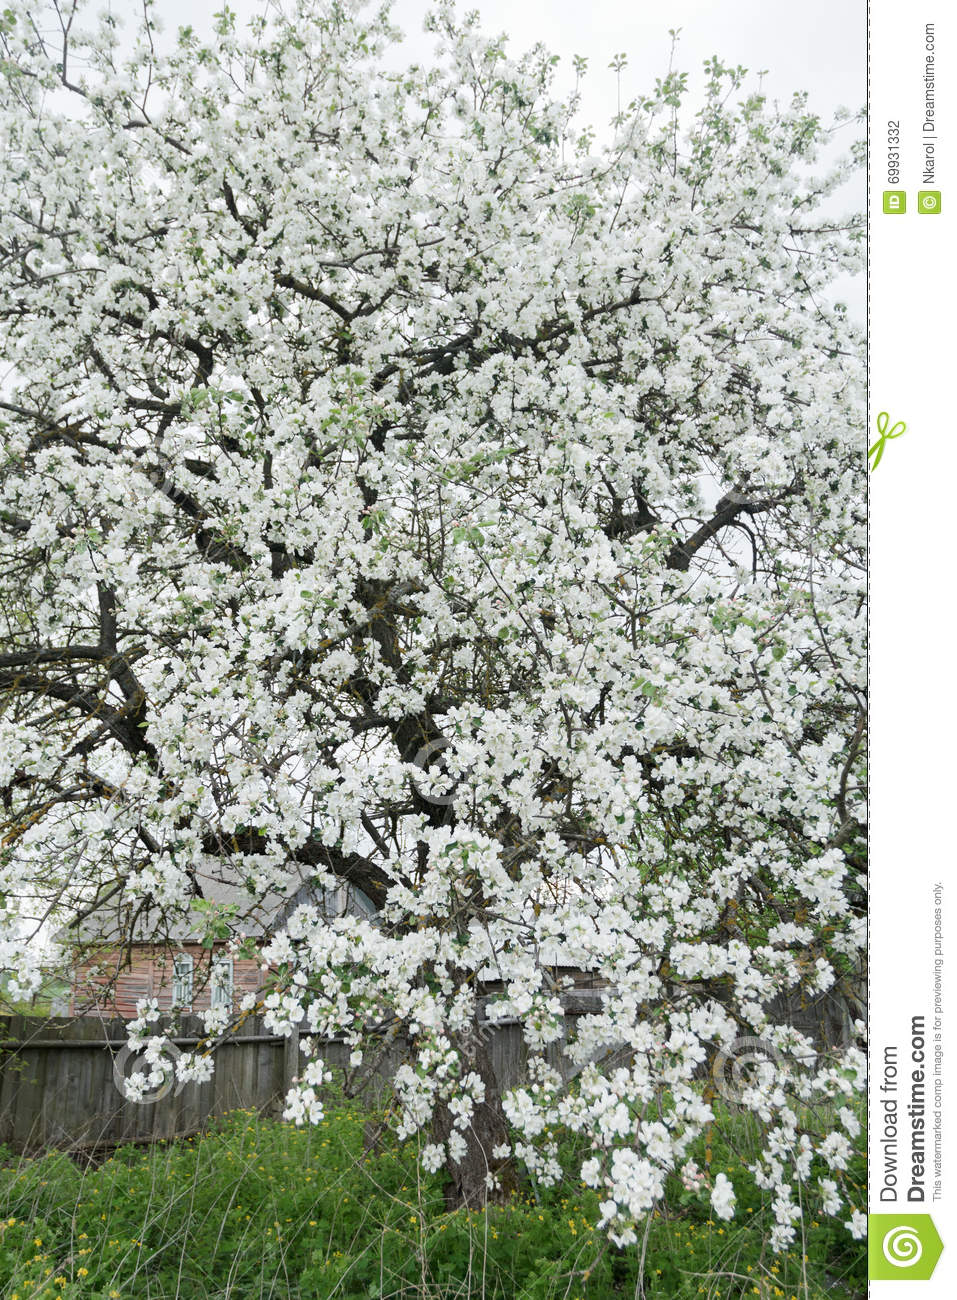 Blossoming apple tree in spring garden covering with snowy white download blossoming apple tree in spring garden covering with snowy white flowers at old wood farm mightylinksfo